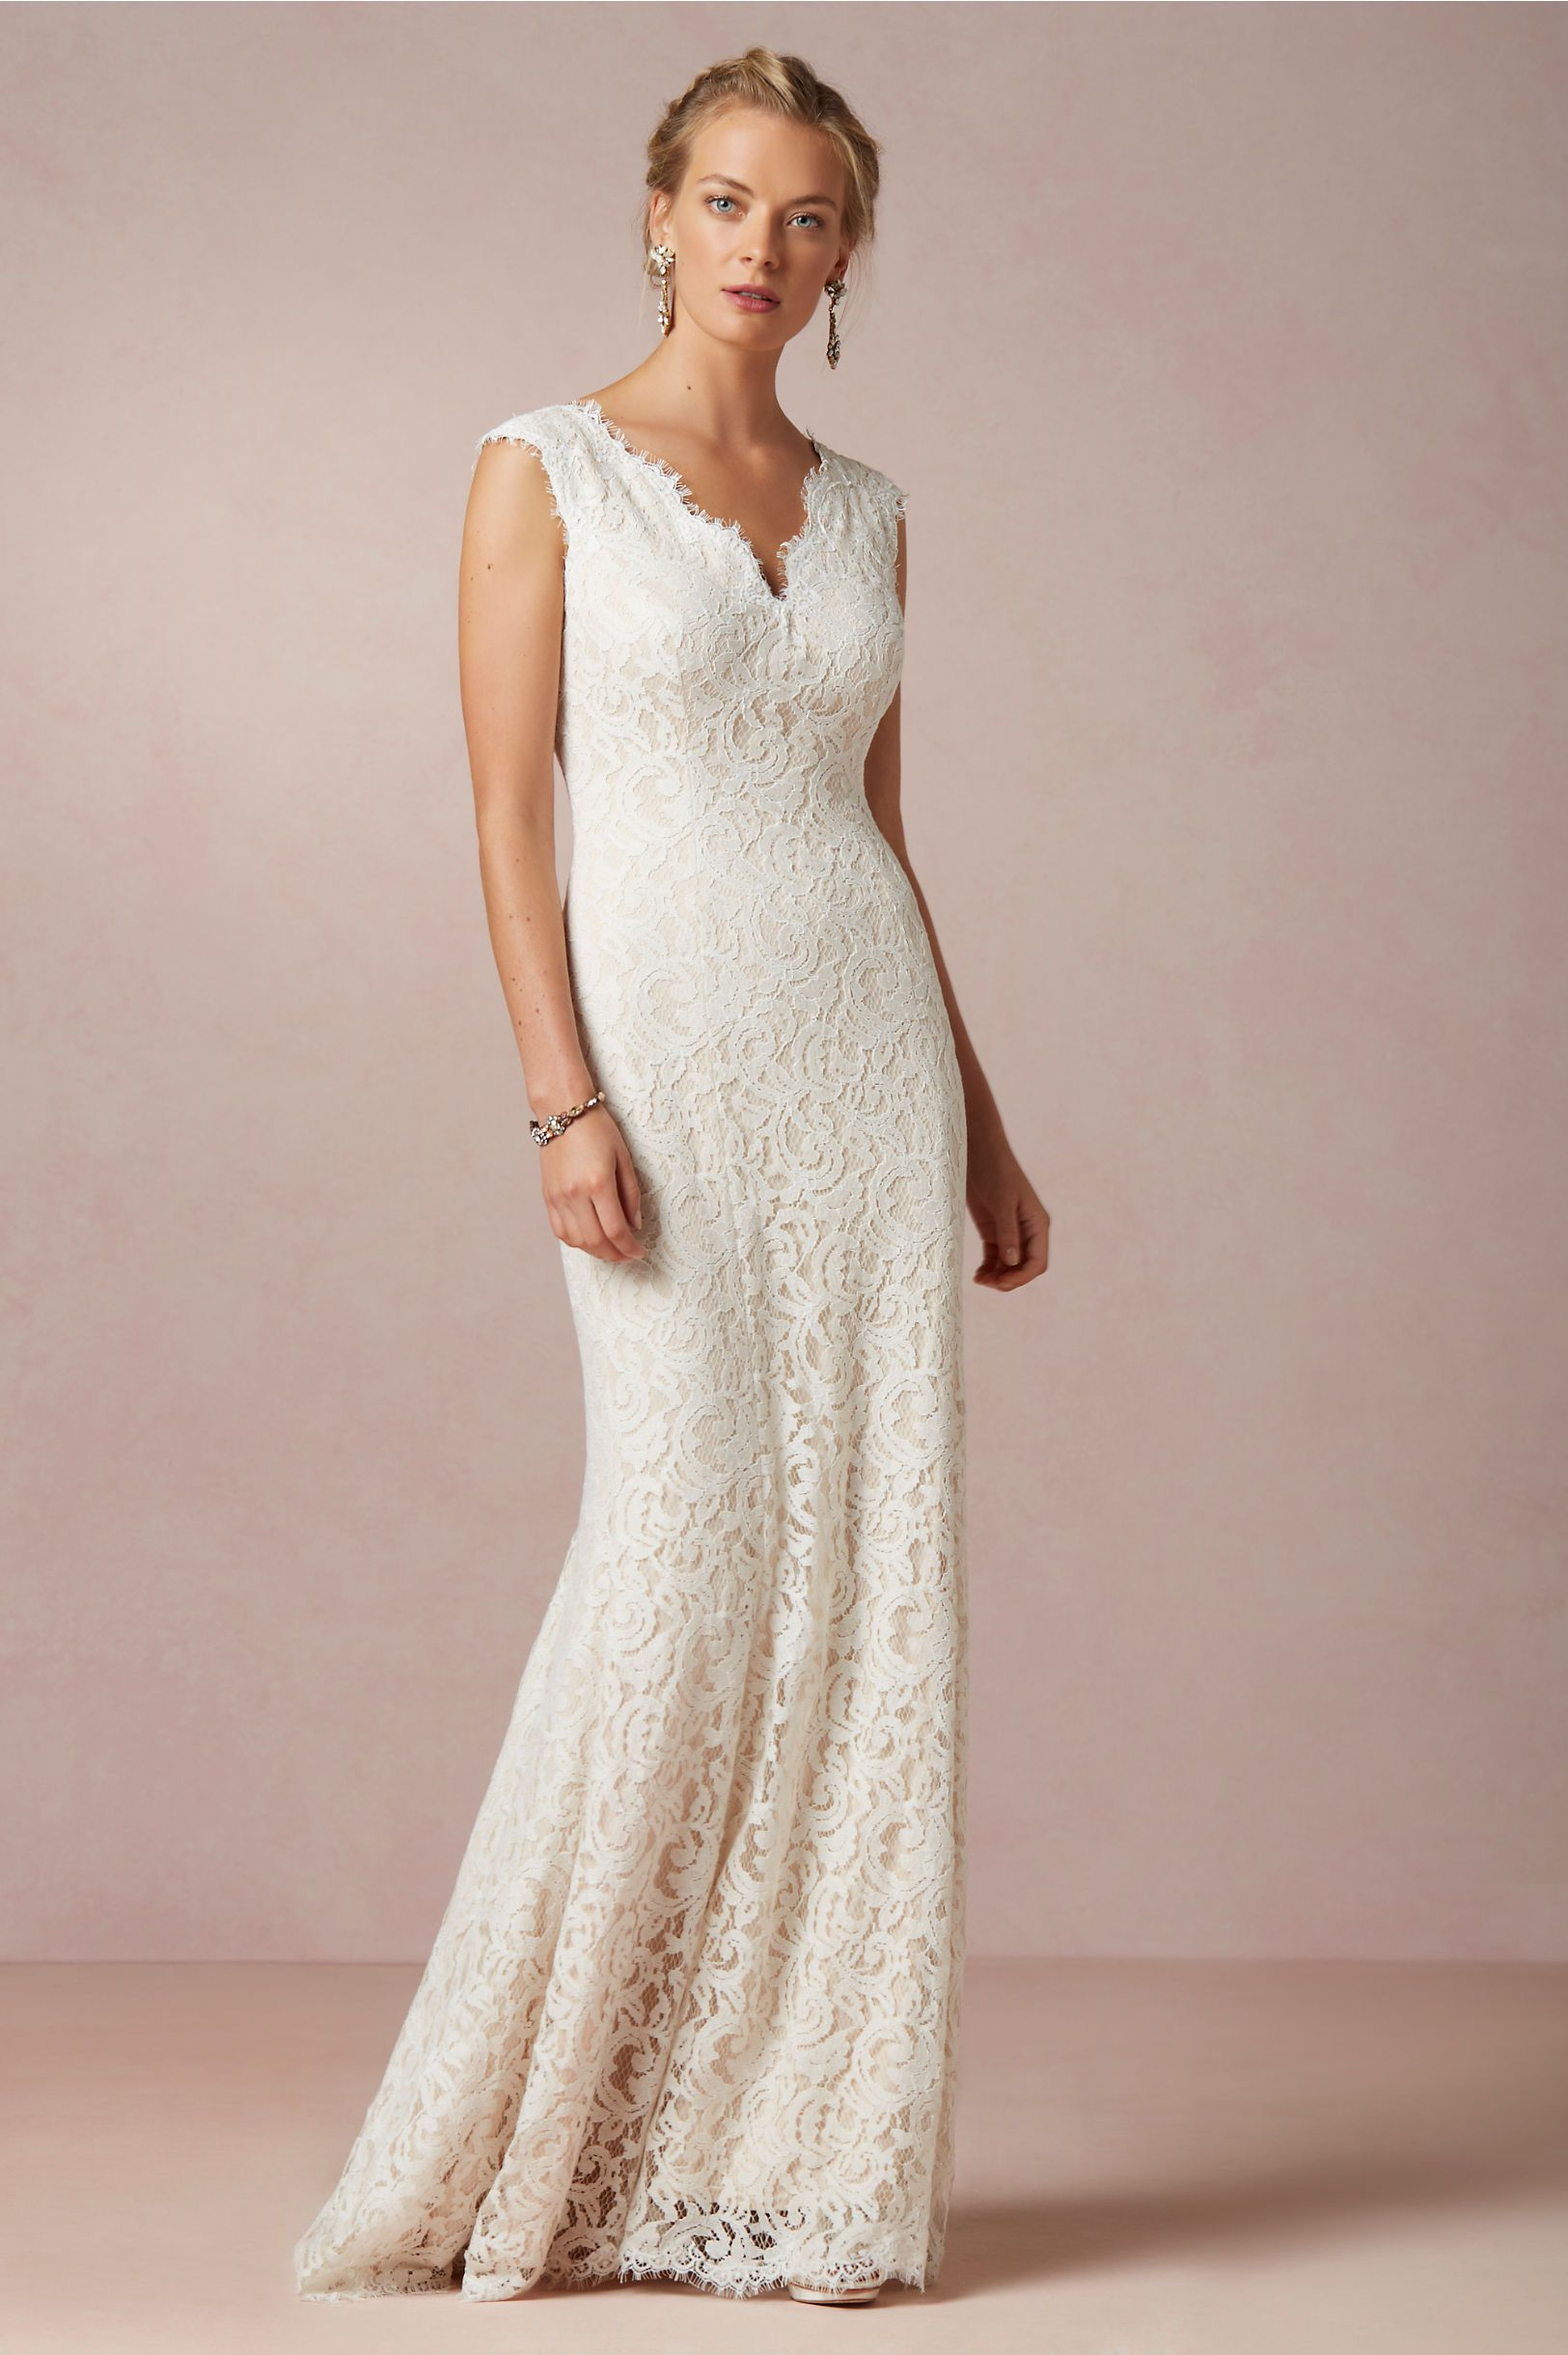 Margeaux Gown Wedding Dresses Lace Weddings Used Wedding Dresses